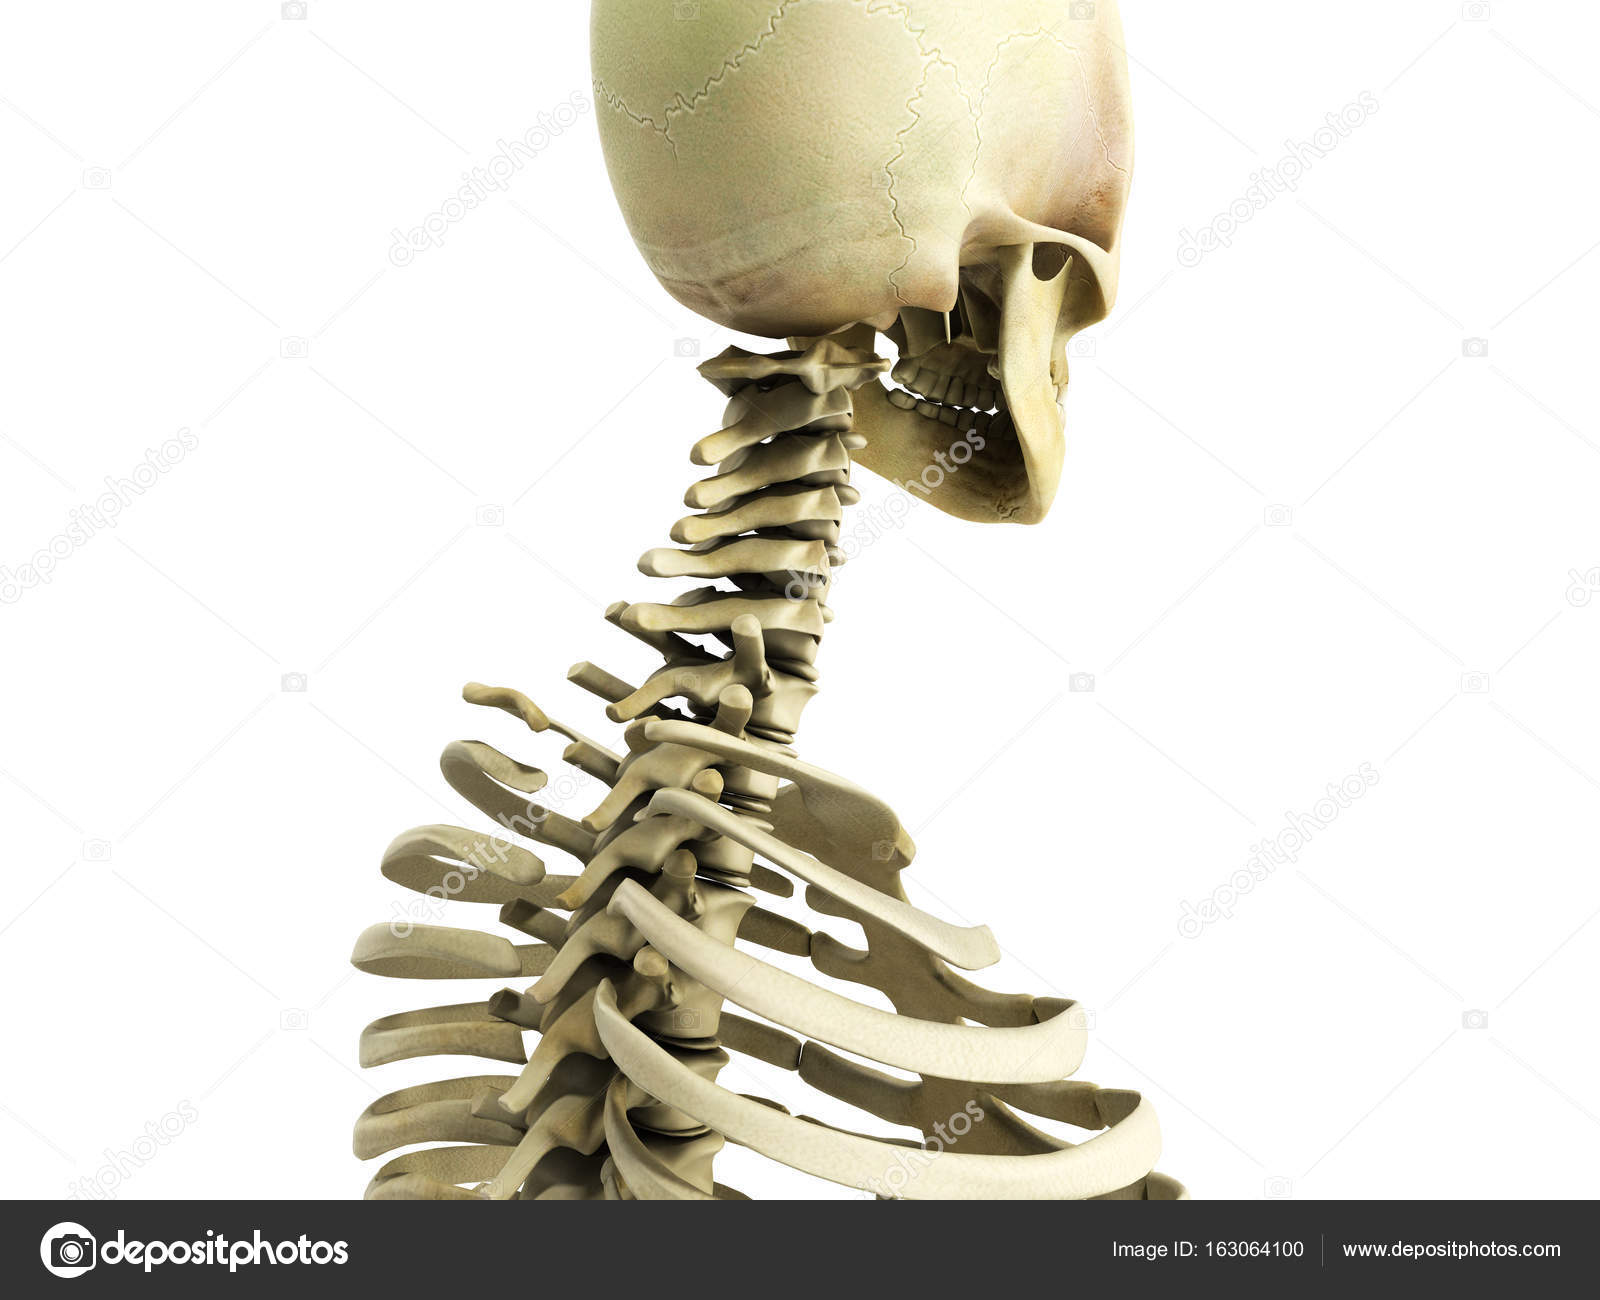 Medically Accurate 3d Illustration Of The Skeletal System The Ce